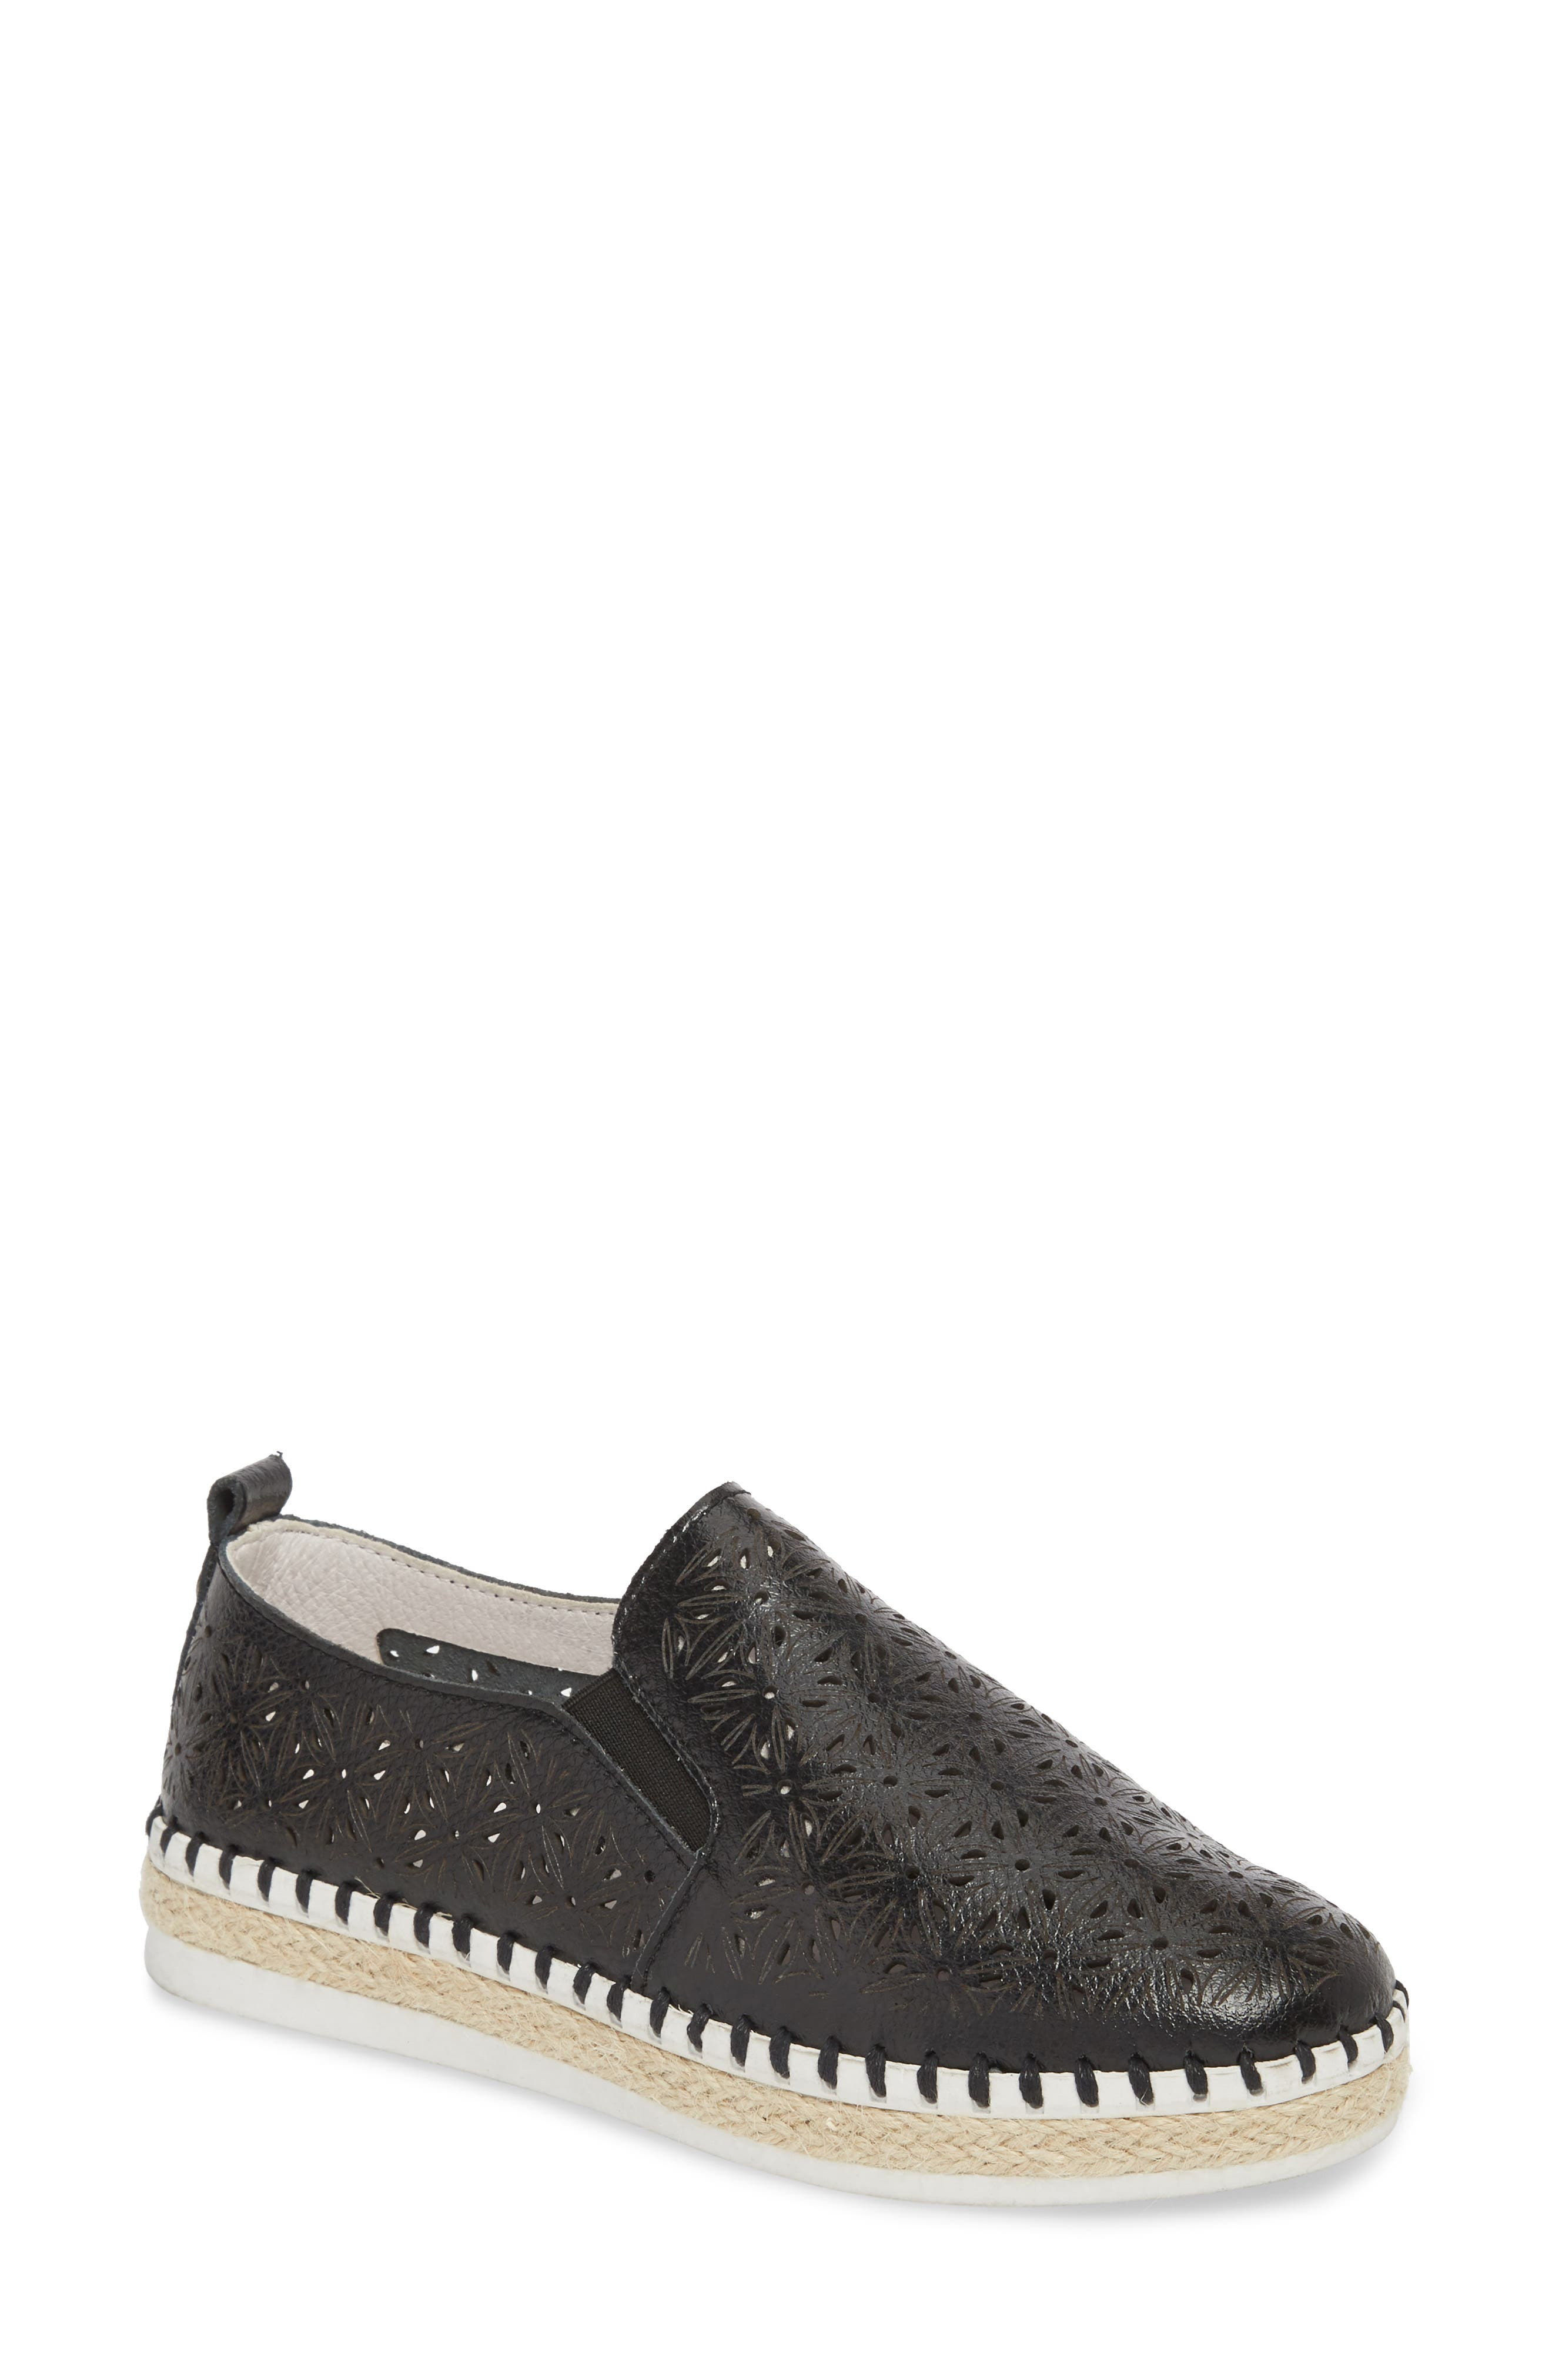 TW101 Espadrille Flat,                         Main,                         color, BLACK LEATHER